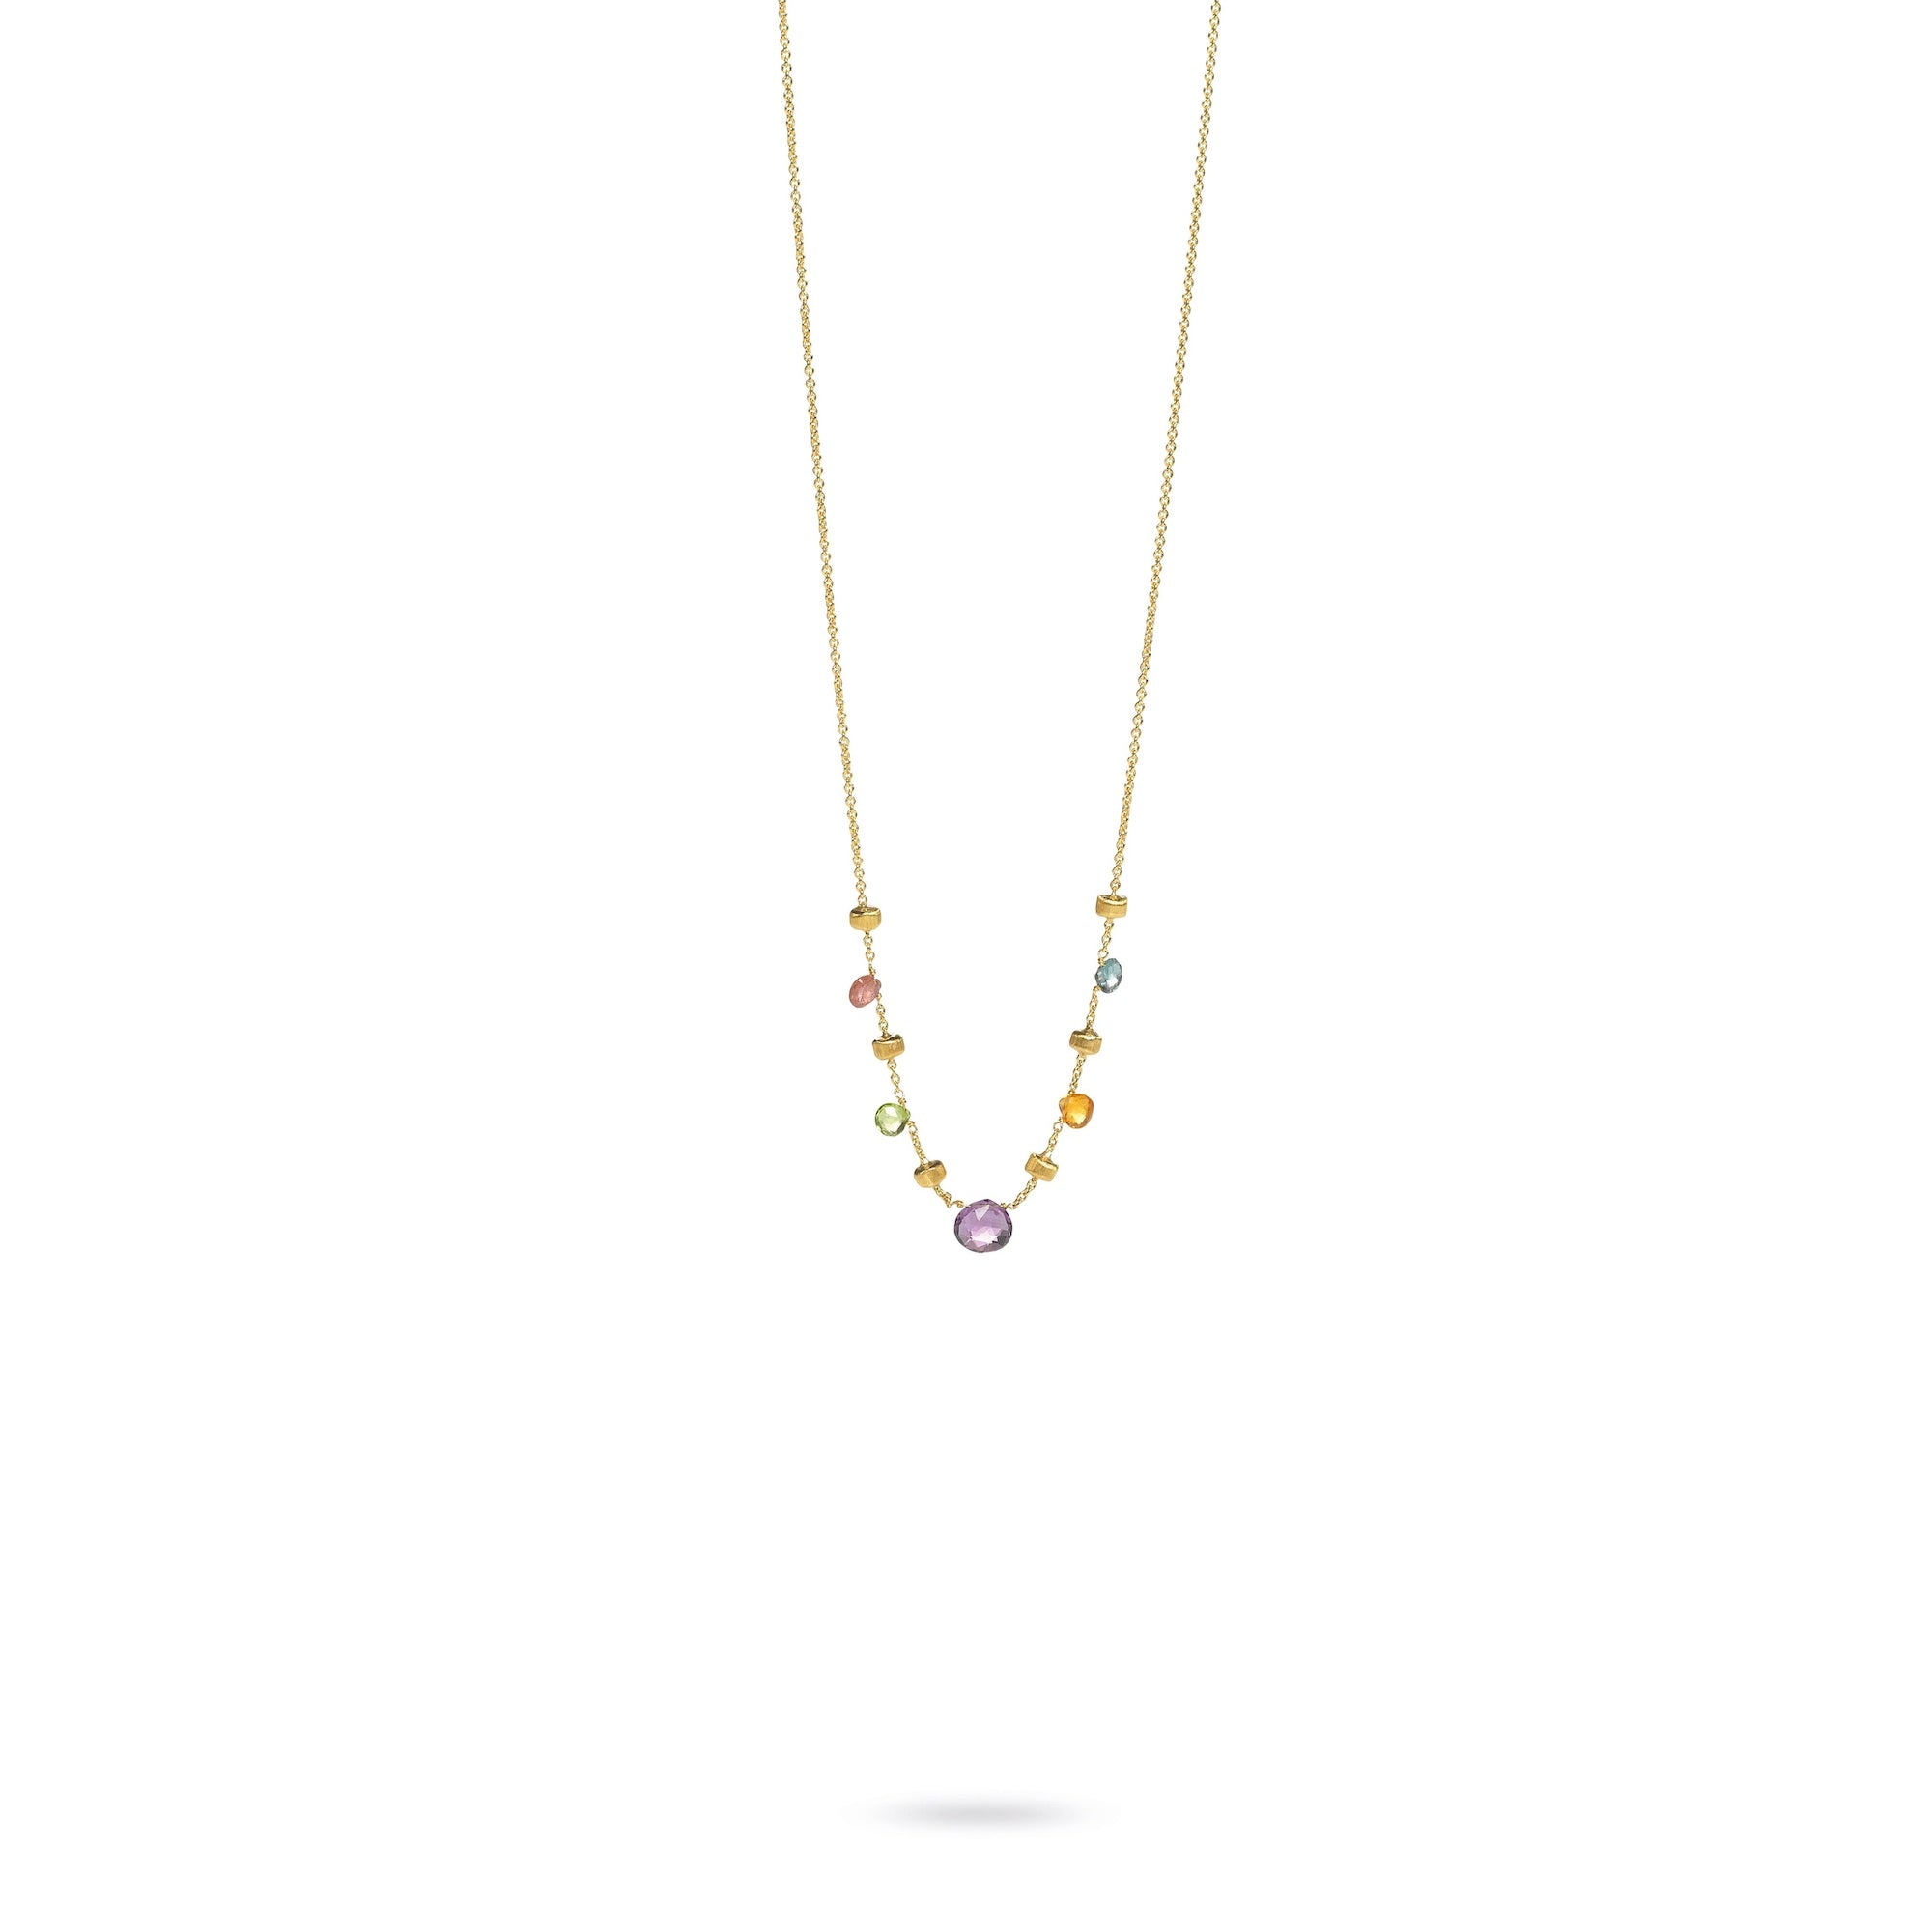 18K Yellow Gold & Mixed Stone Paradise Necklace